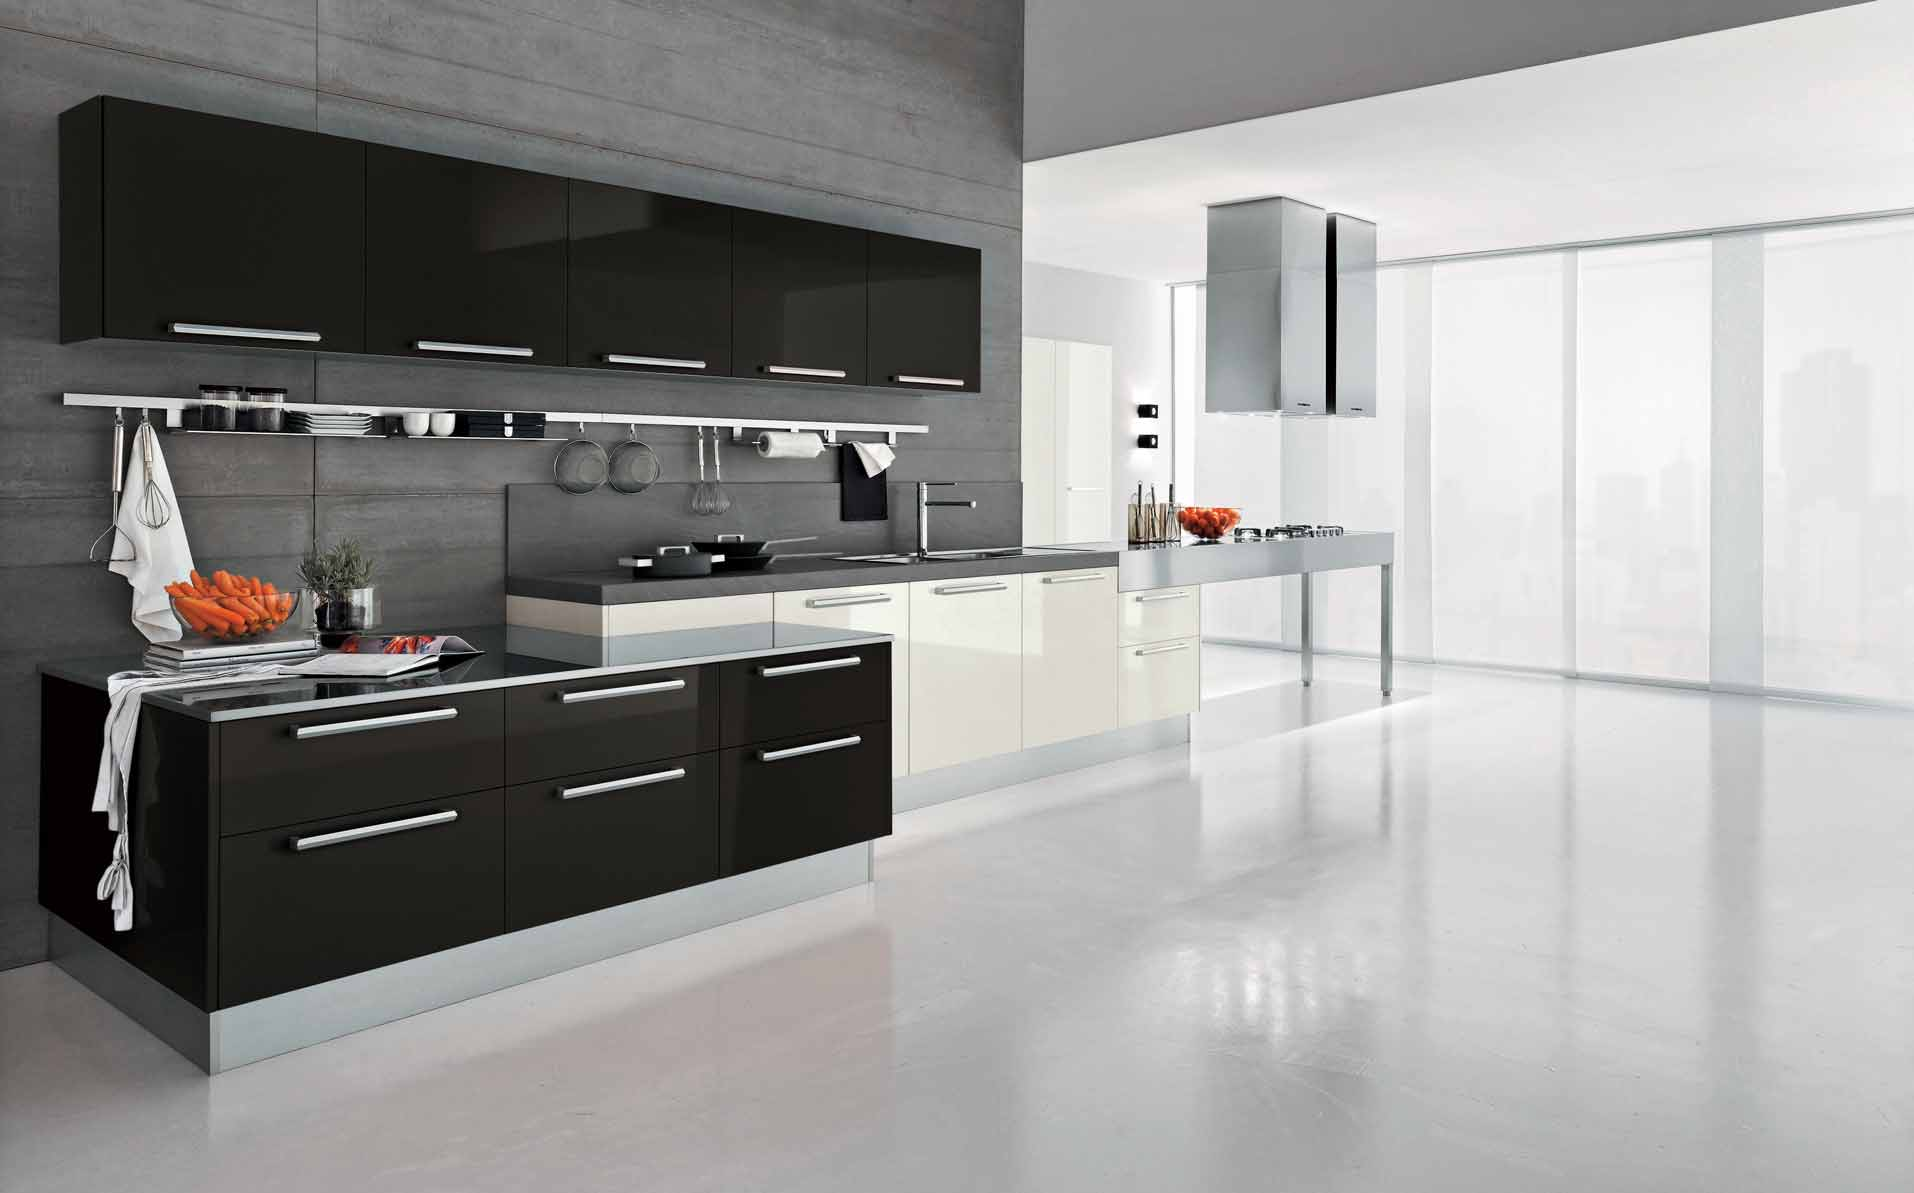 16 open concept kitchen designs in modern style that will beautify your home kitchen designs 16 Open Concept Kitchen Designs In Modern Style That Will Beautify Your Home